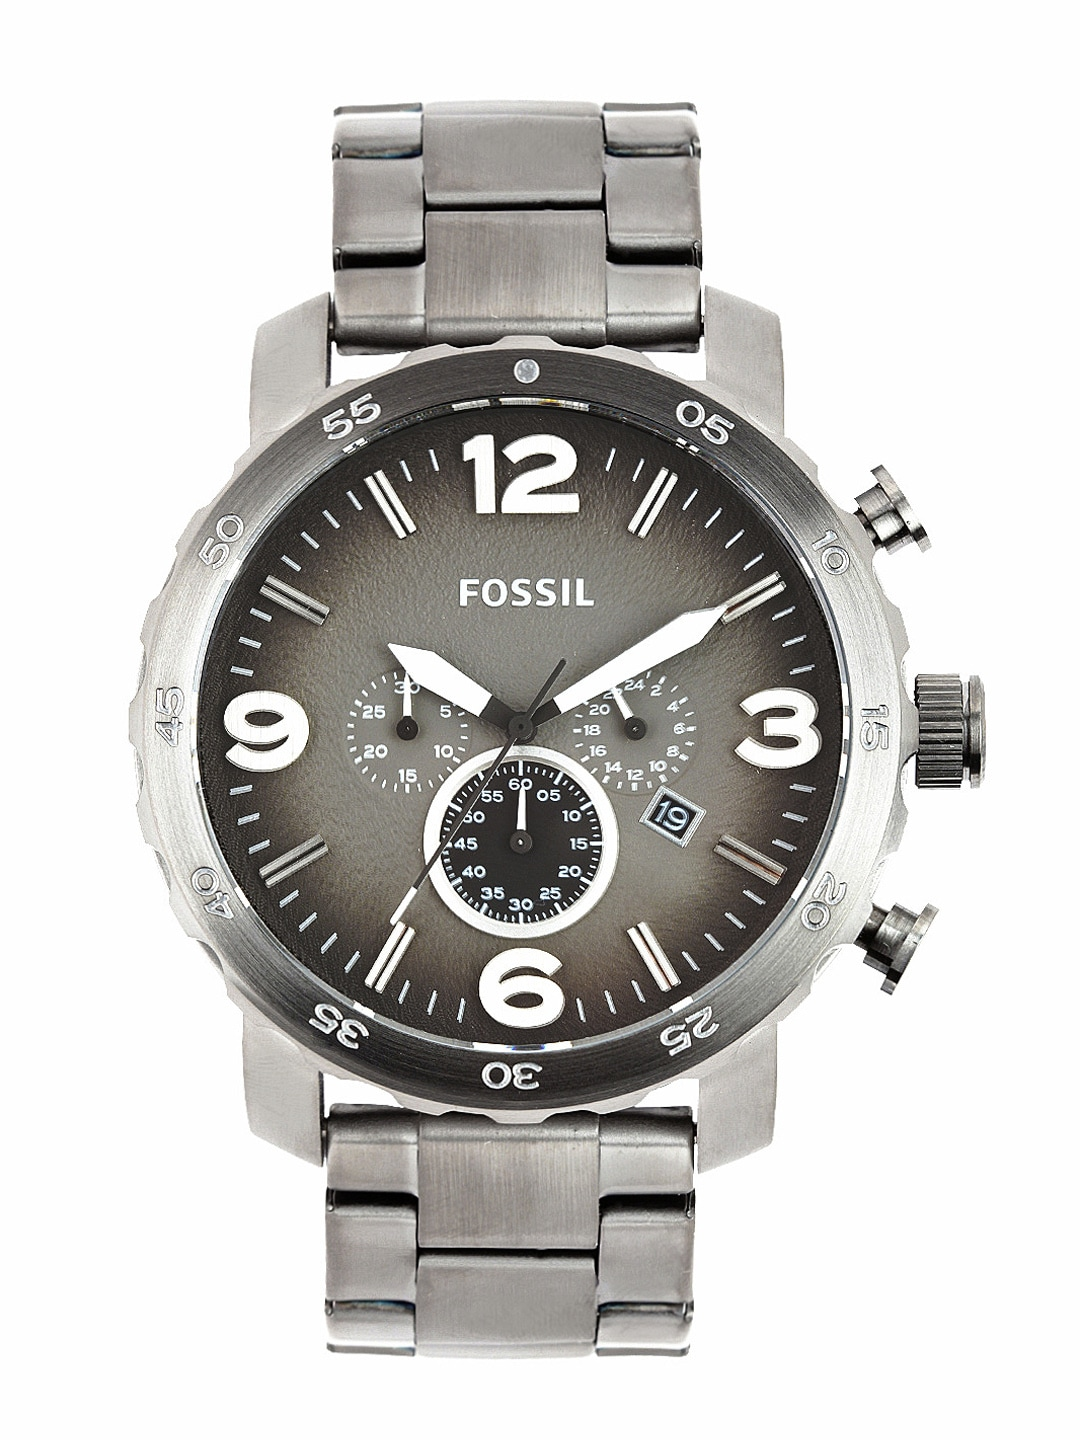 Fossil Men Grey Dial Chronograph Watch JR1437I